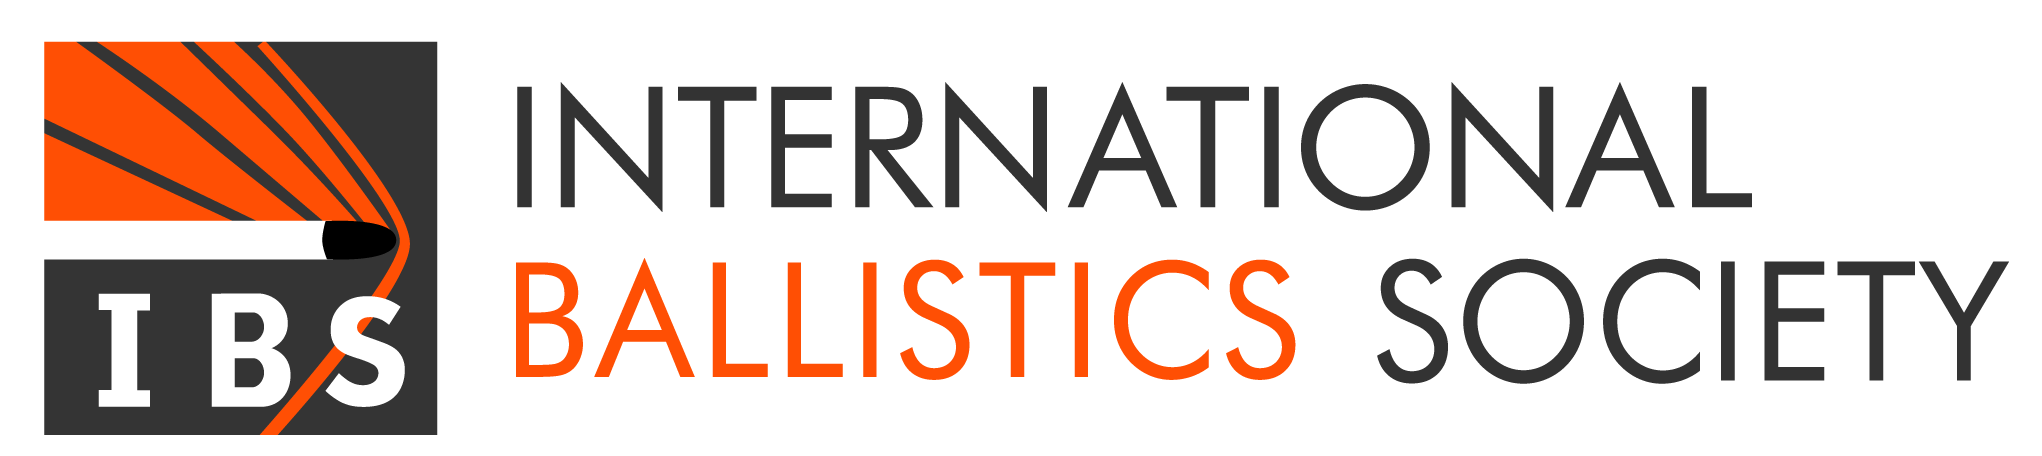 International Ballistics Society logo.